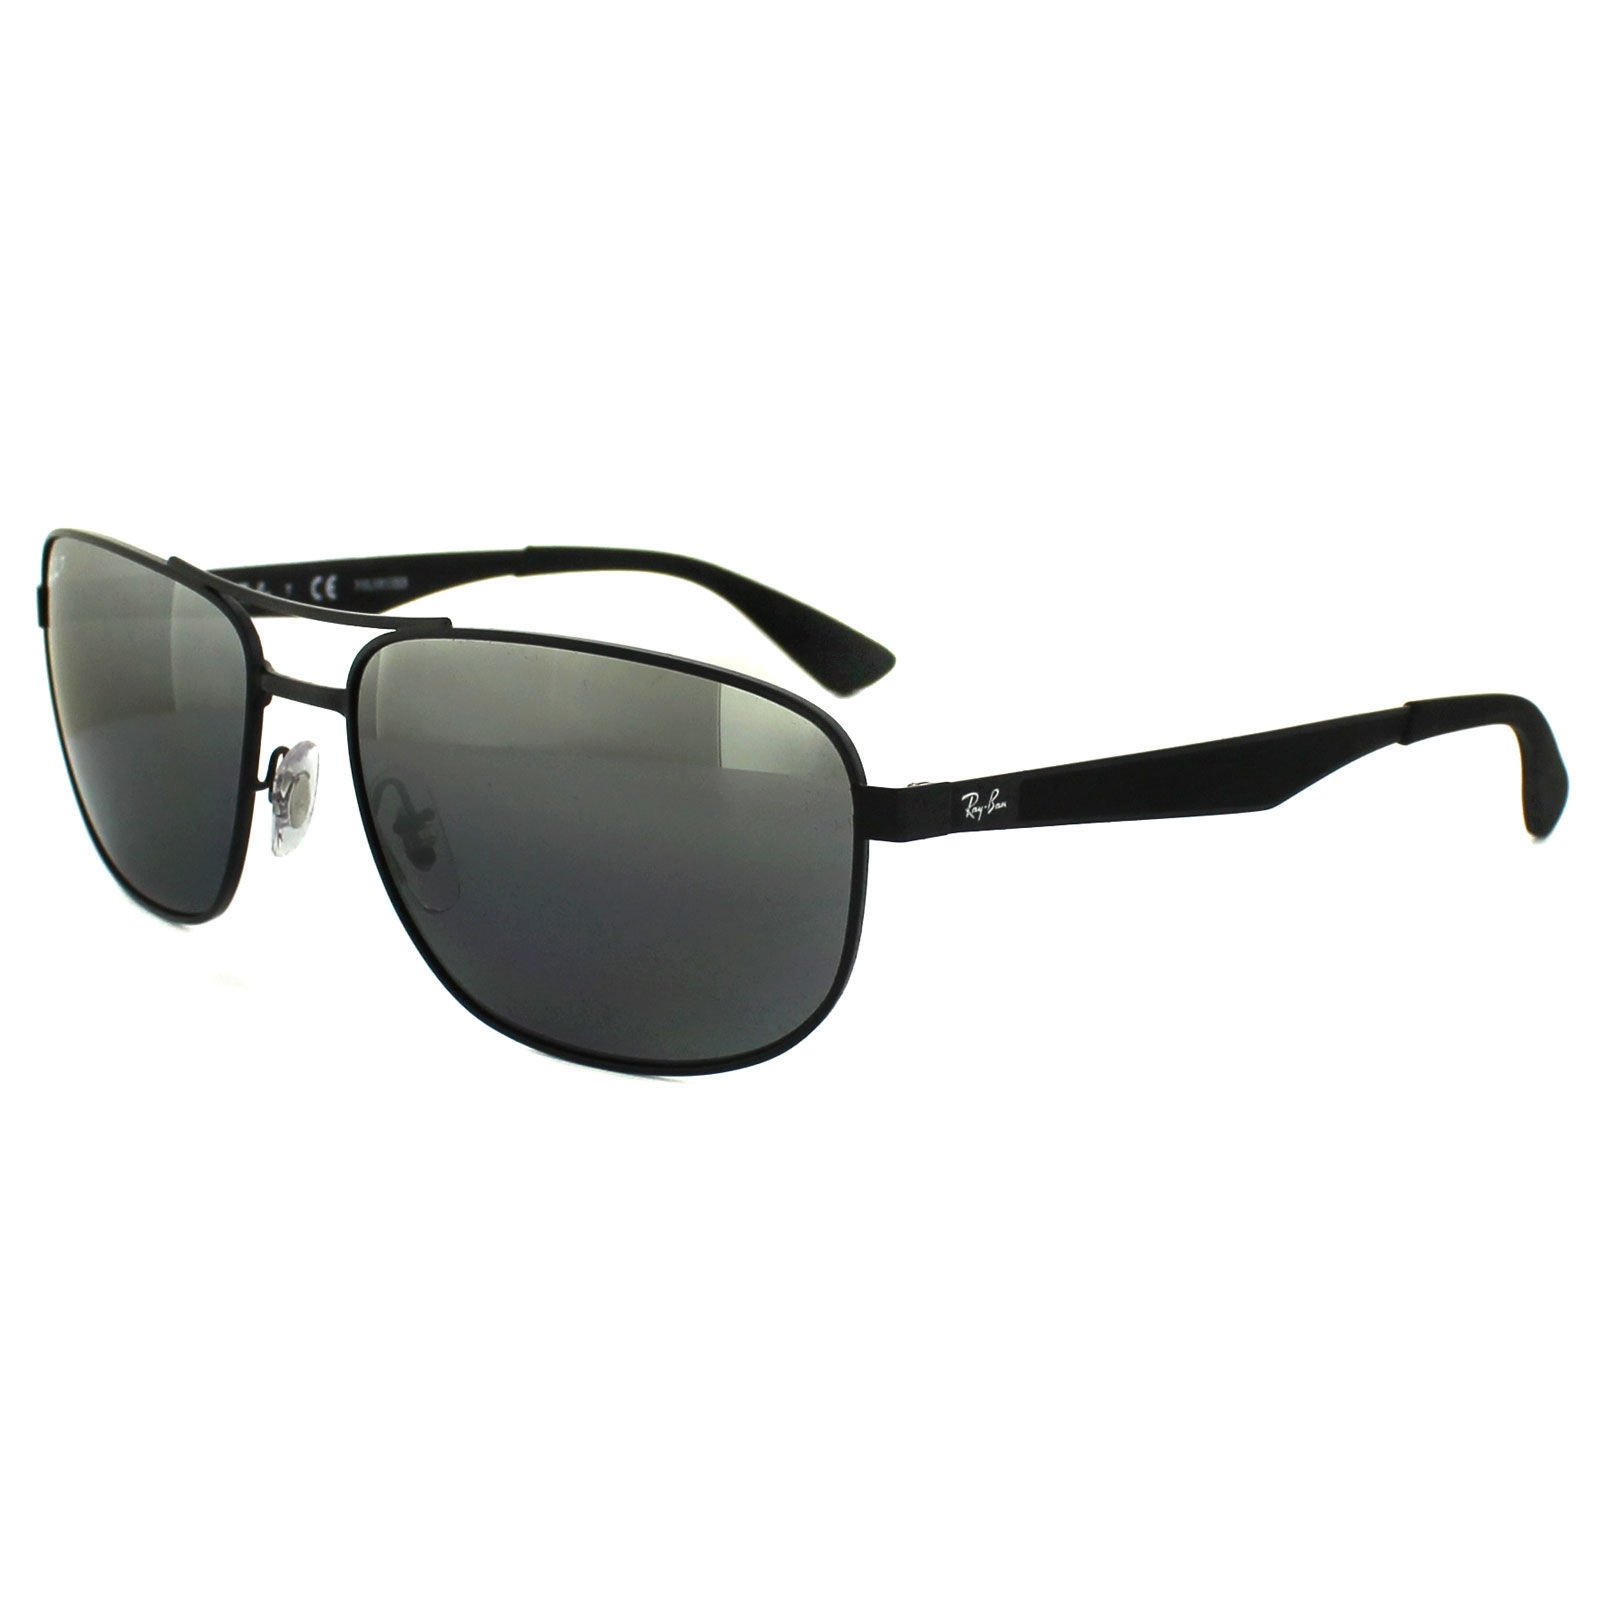 601381d86b Details about Ray-Ban Sunglasses 3528 006 82 Matt Black Silver Mirror  Polarized 61mm